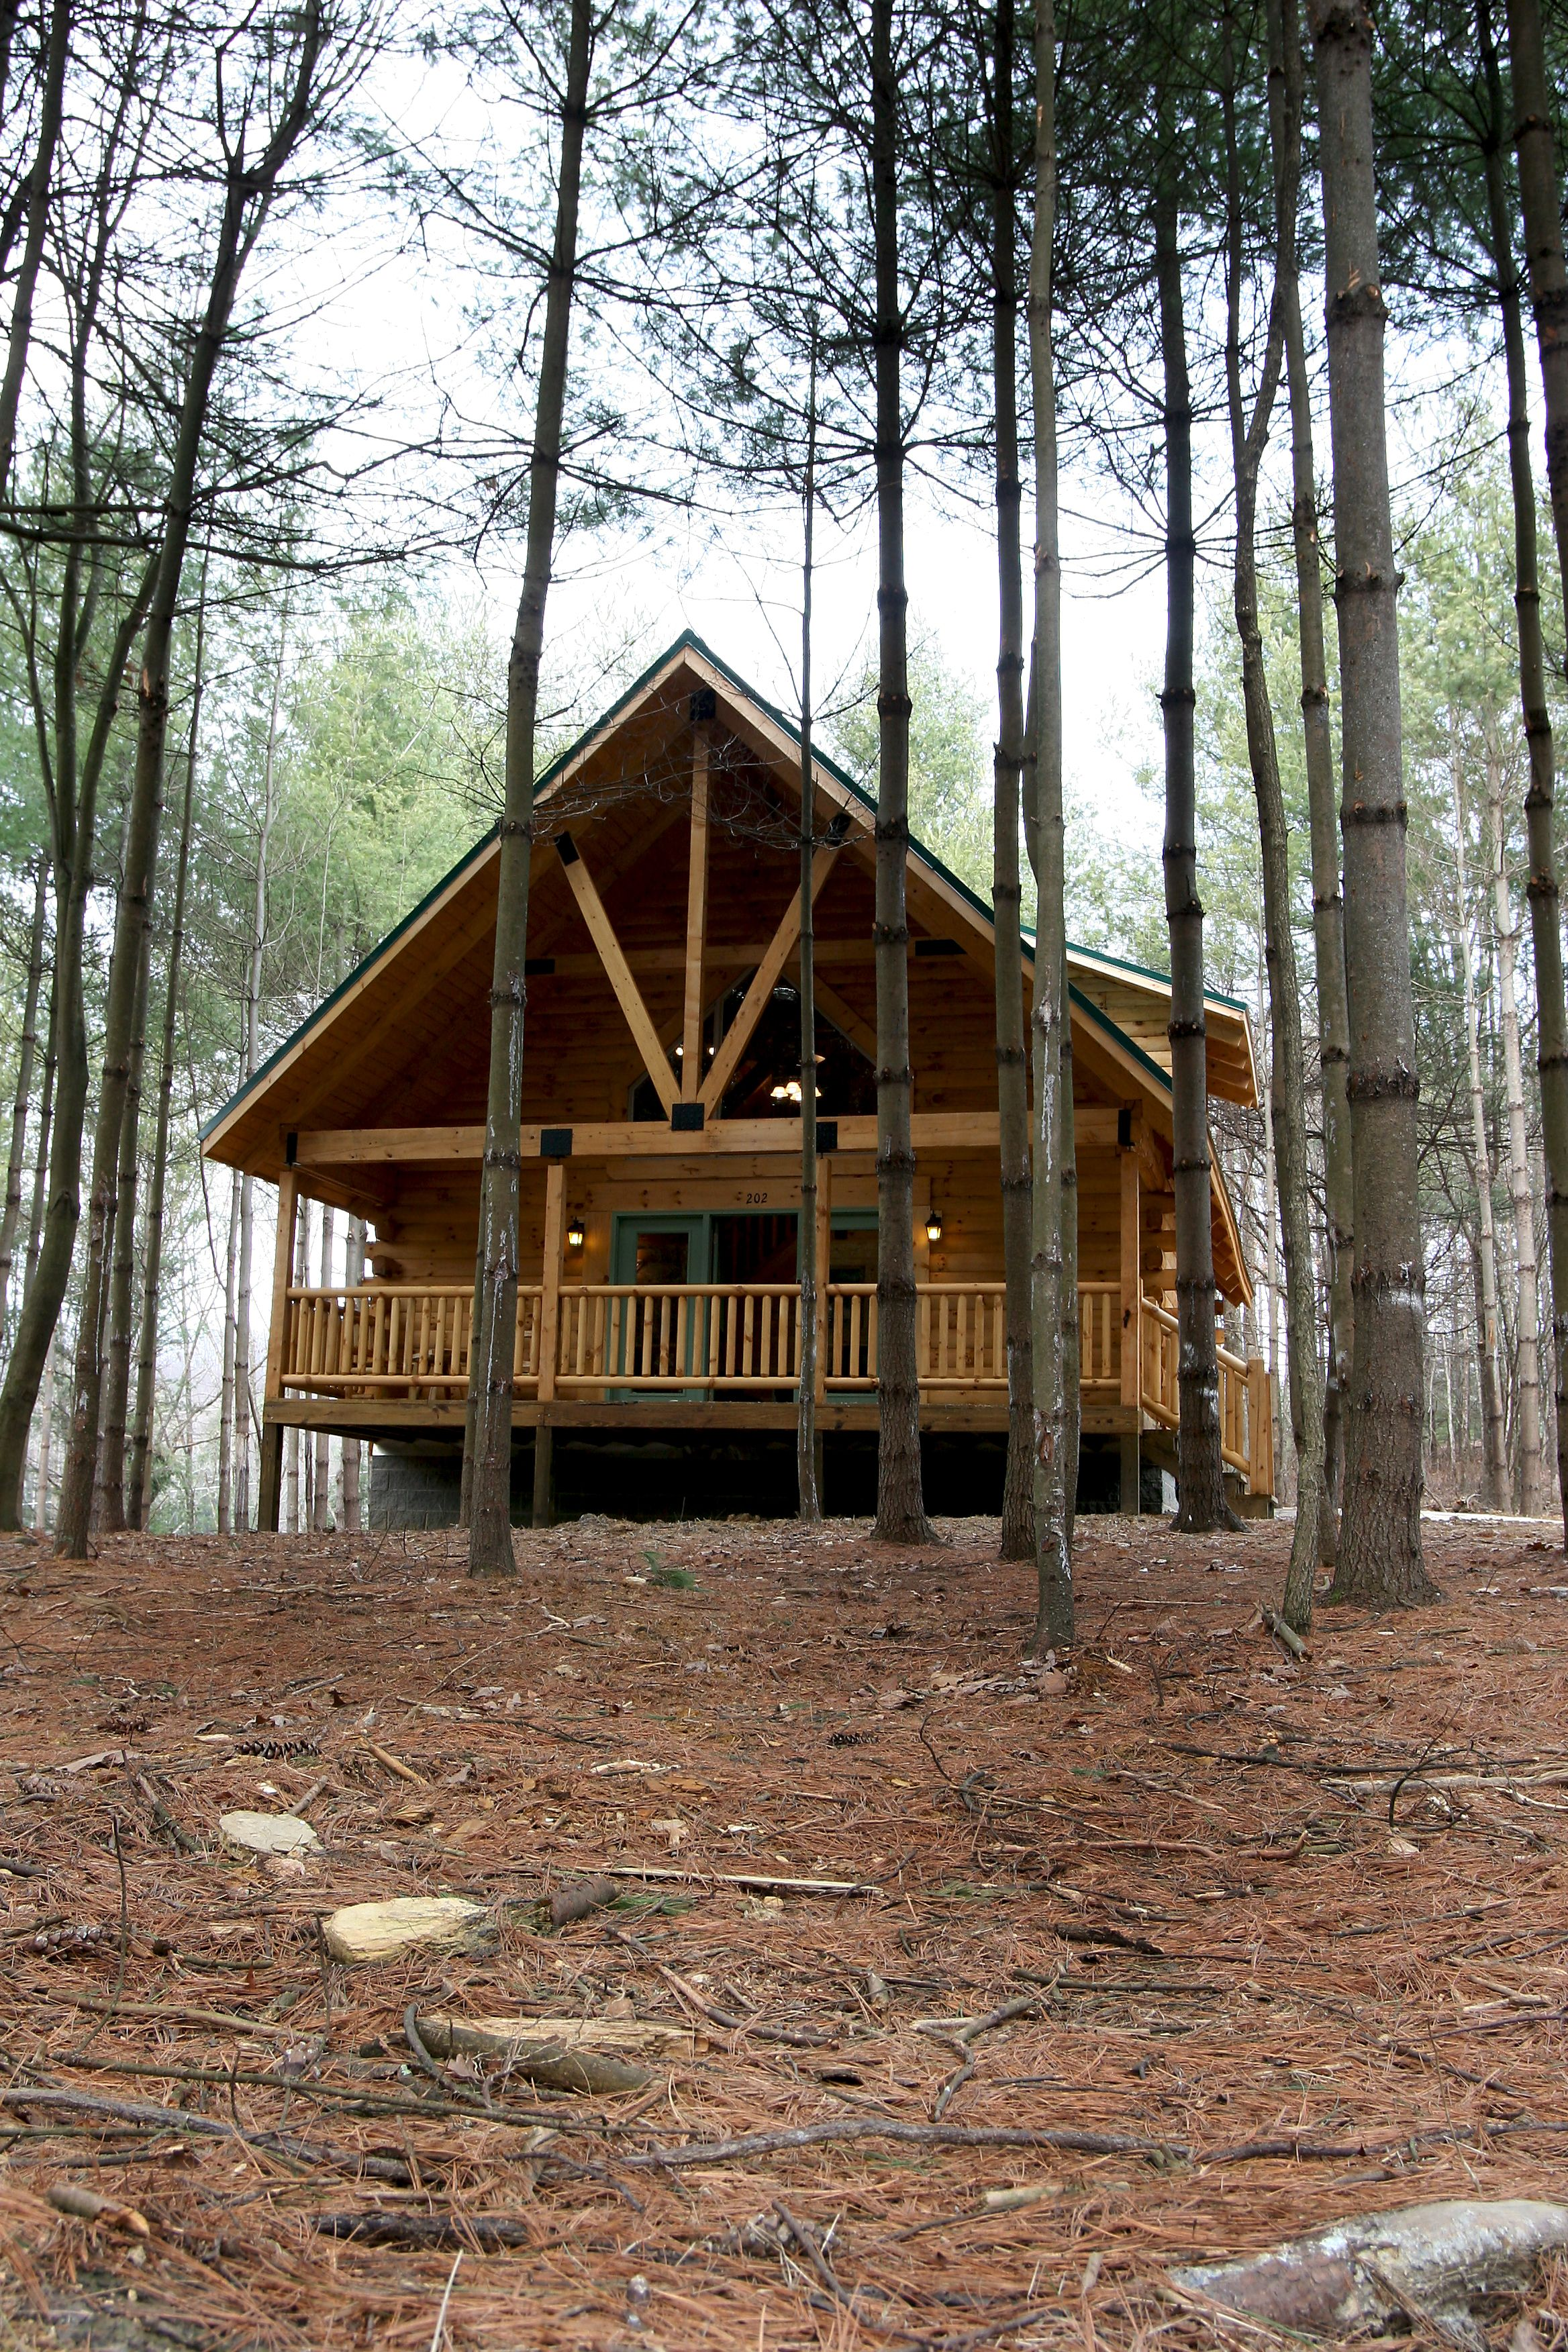 berkeley watch design cabin in sq hand house small cabins great virginia west springs ft s hewn